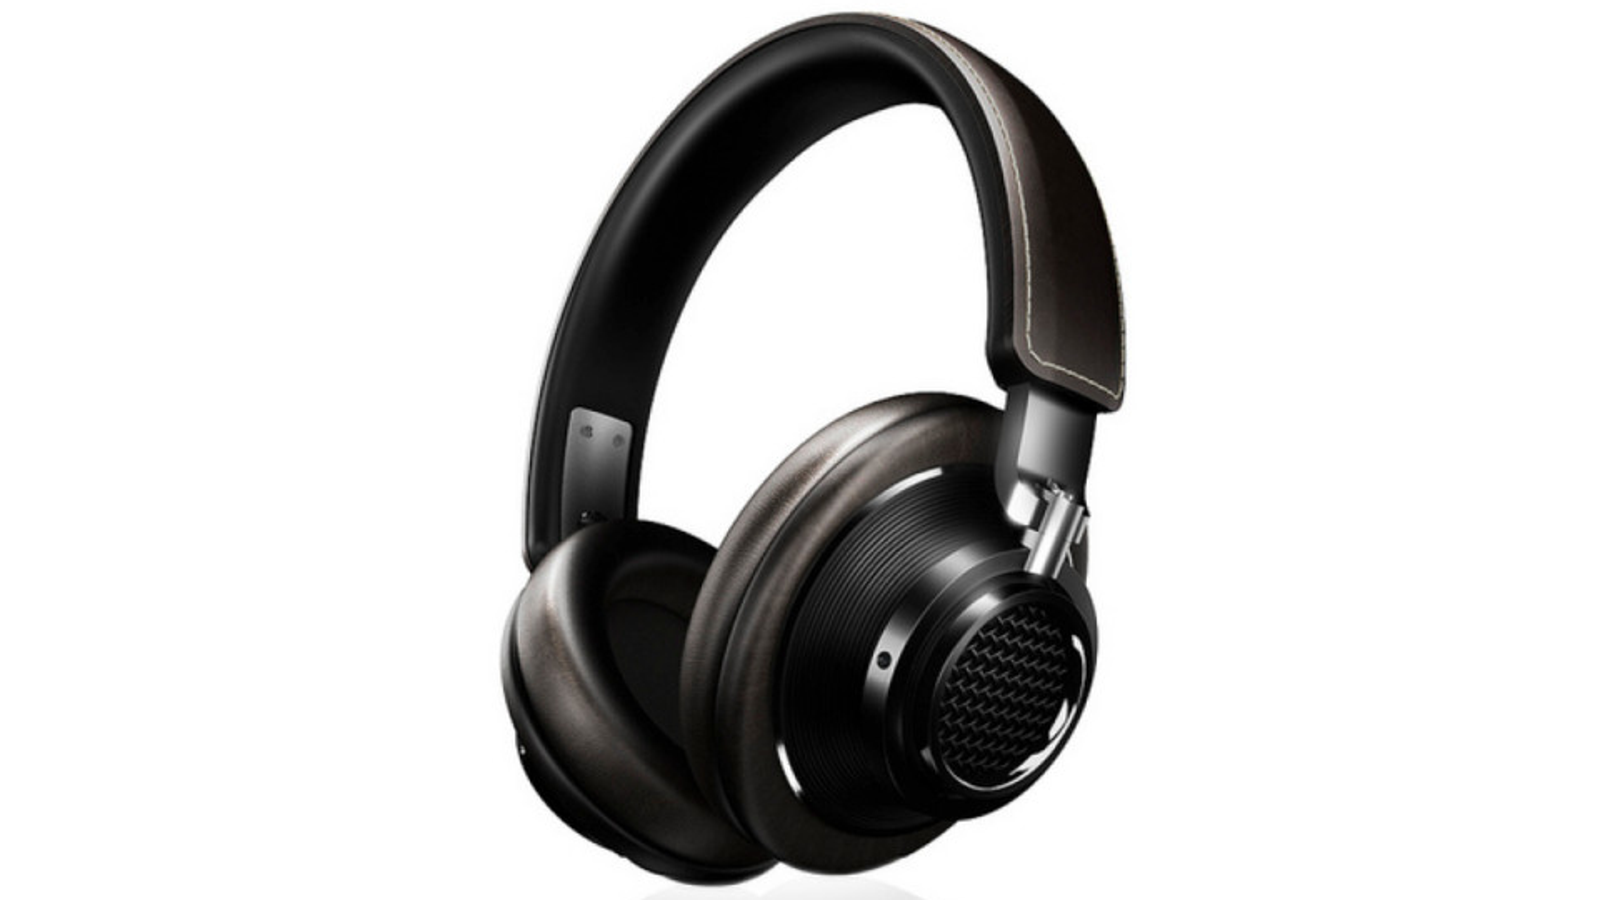 monitor headphones bluetooth